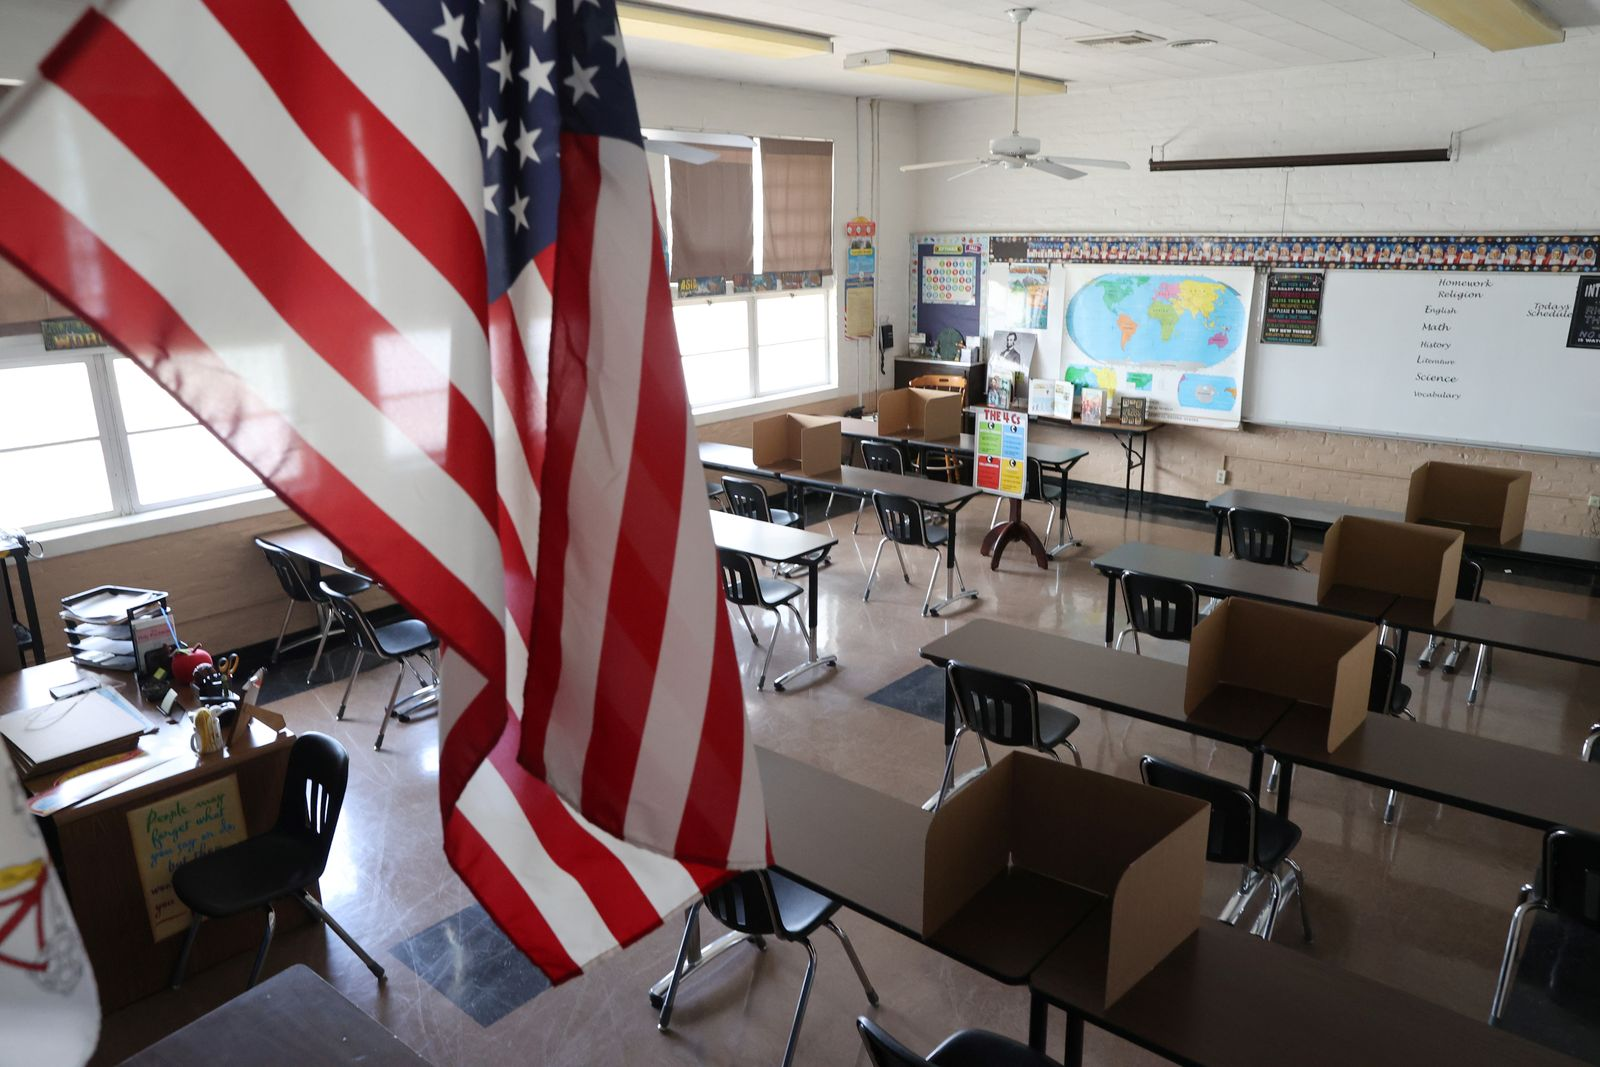 Social distancing dividers for students are seen in a classroom at St. Benedict School, amid the outbreak of the coronavirus disease (COVID-19), in Montebello, near Los Angeles